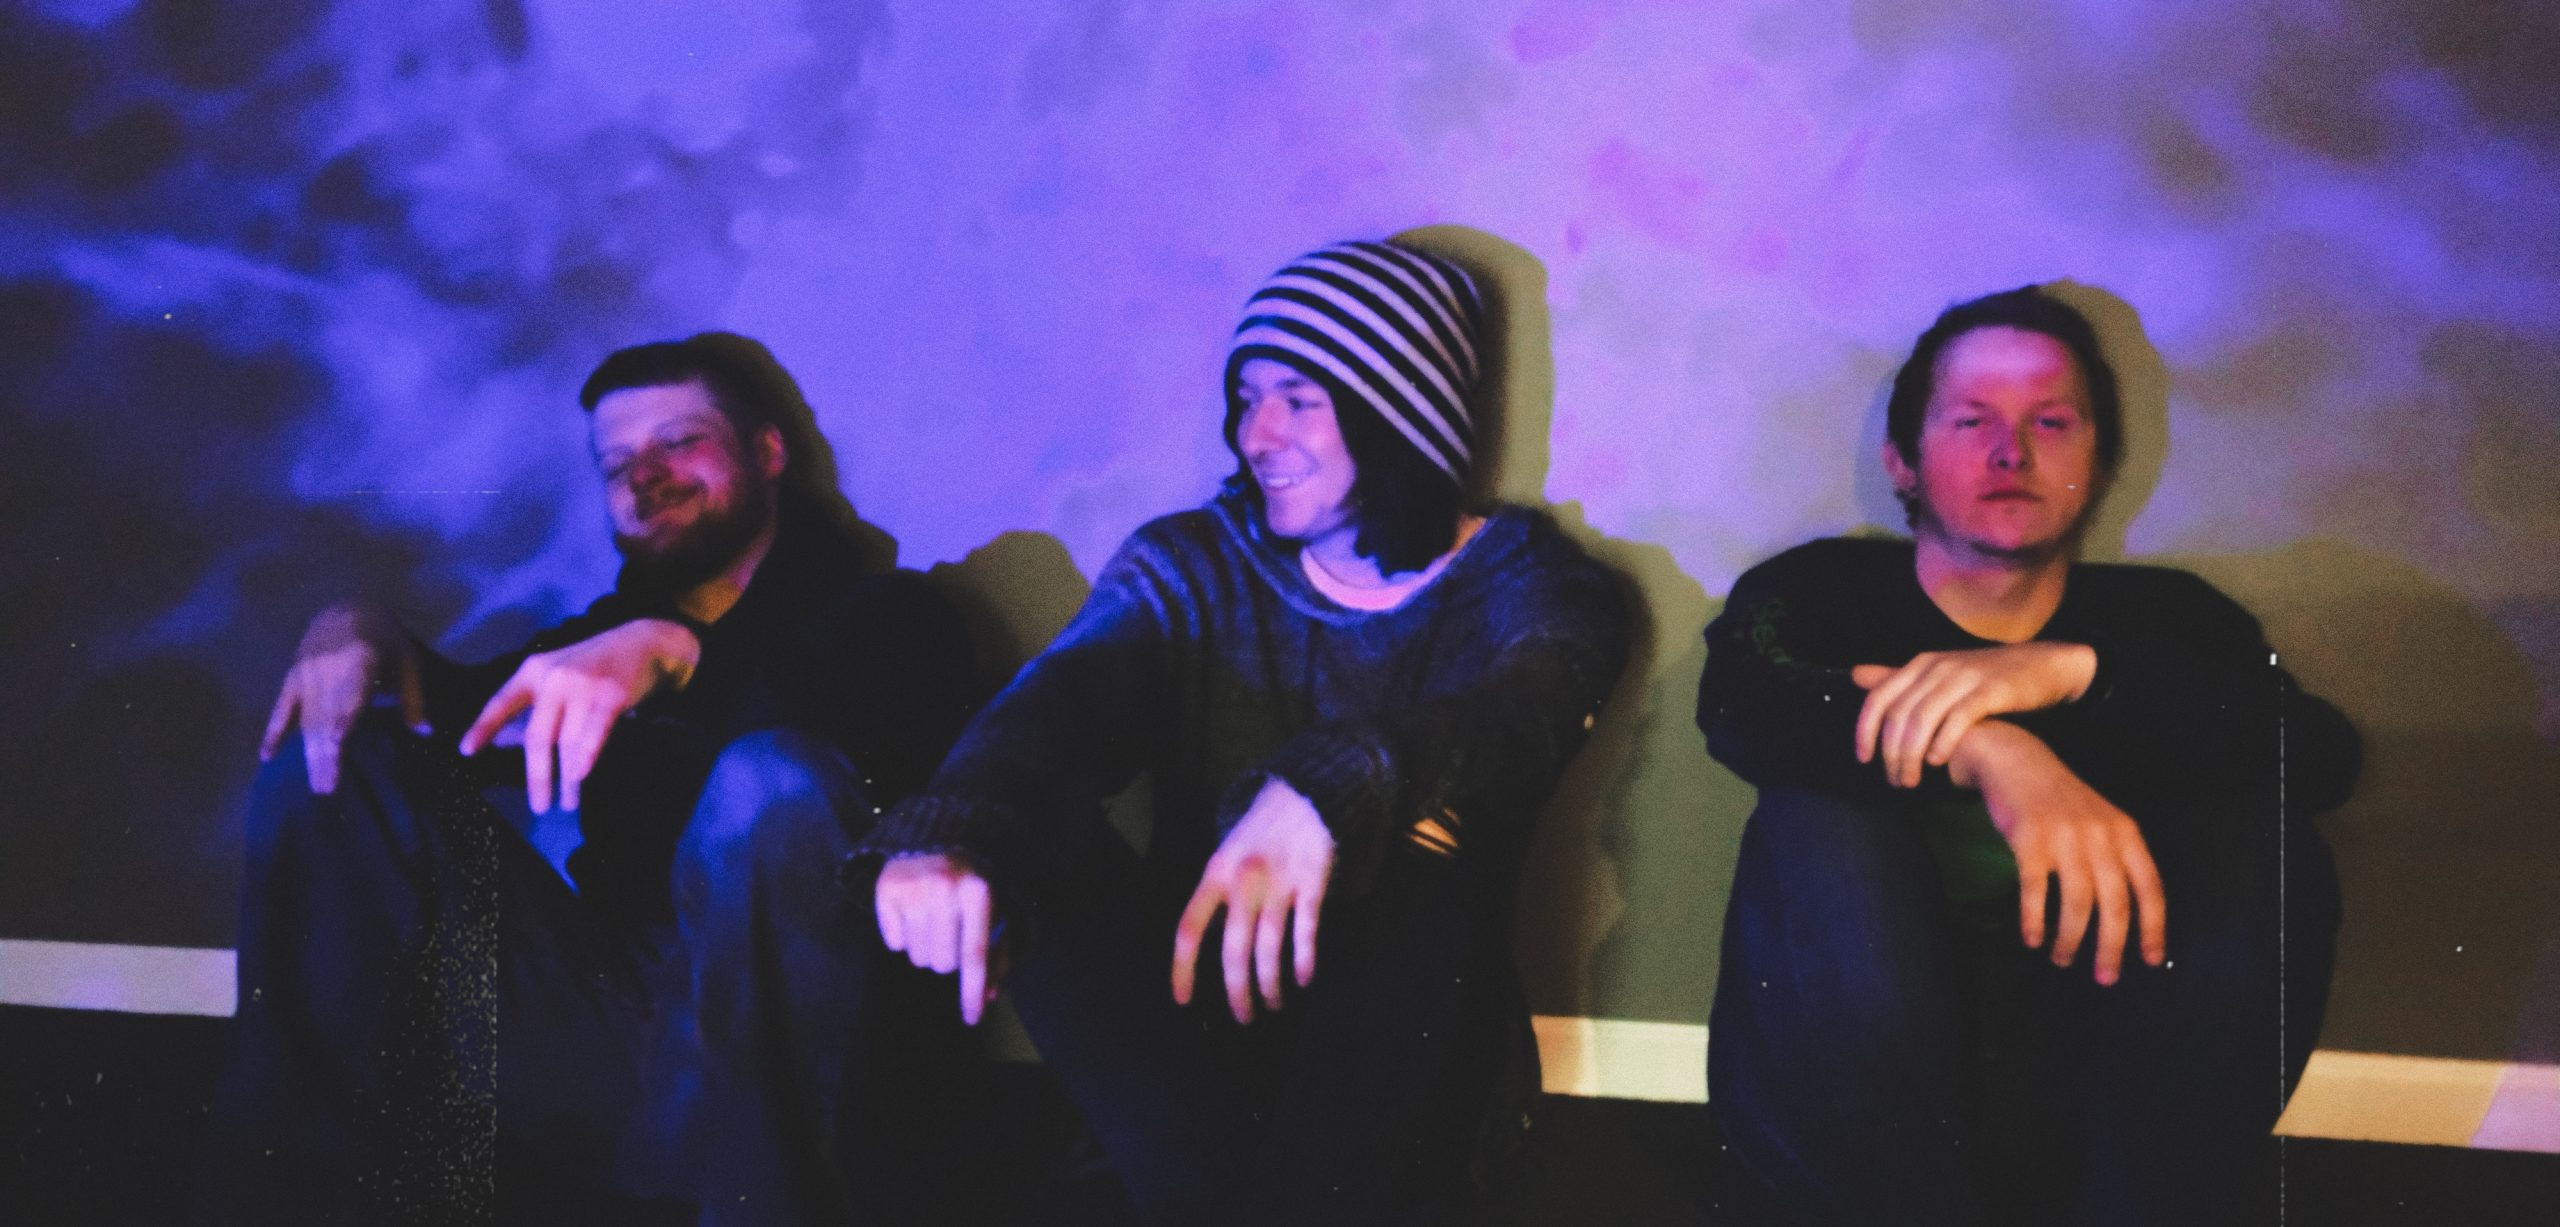 'Save You' by Blind Season is off of their upcoming album; it was a long time in the making but the band are proud of this latest release